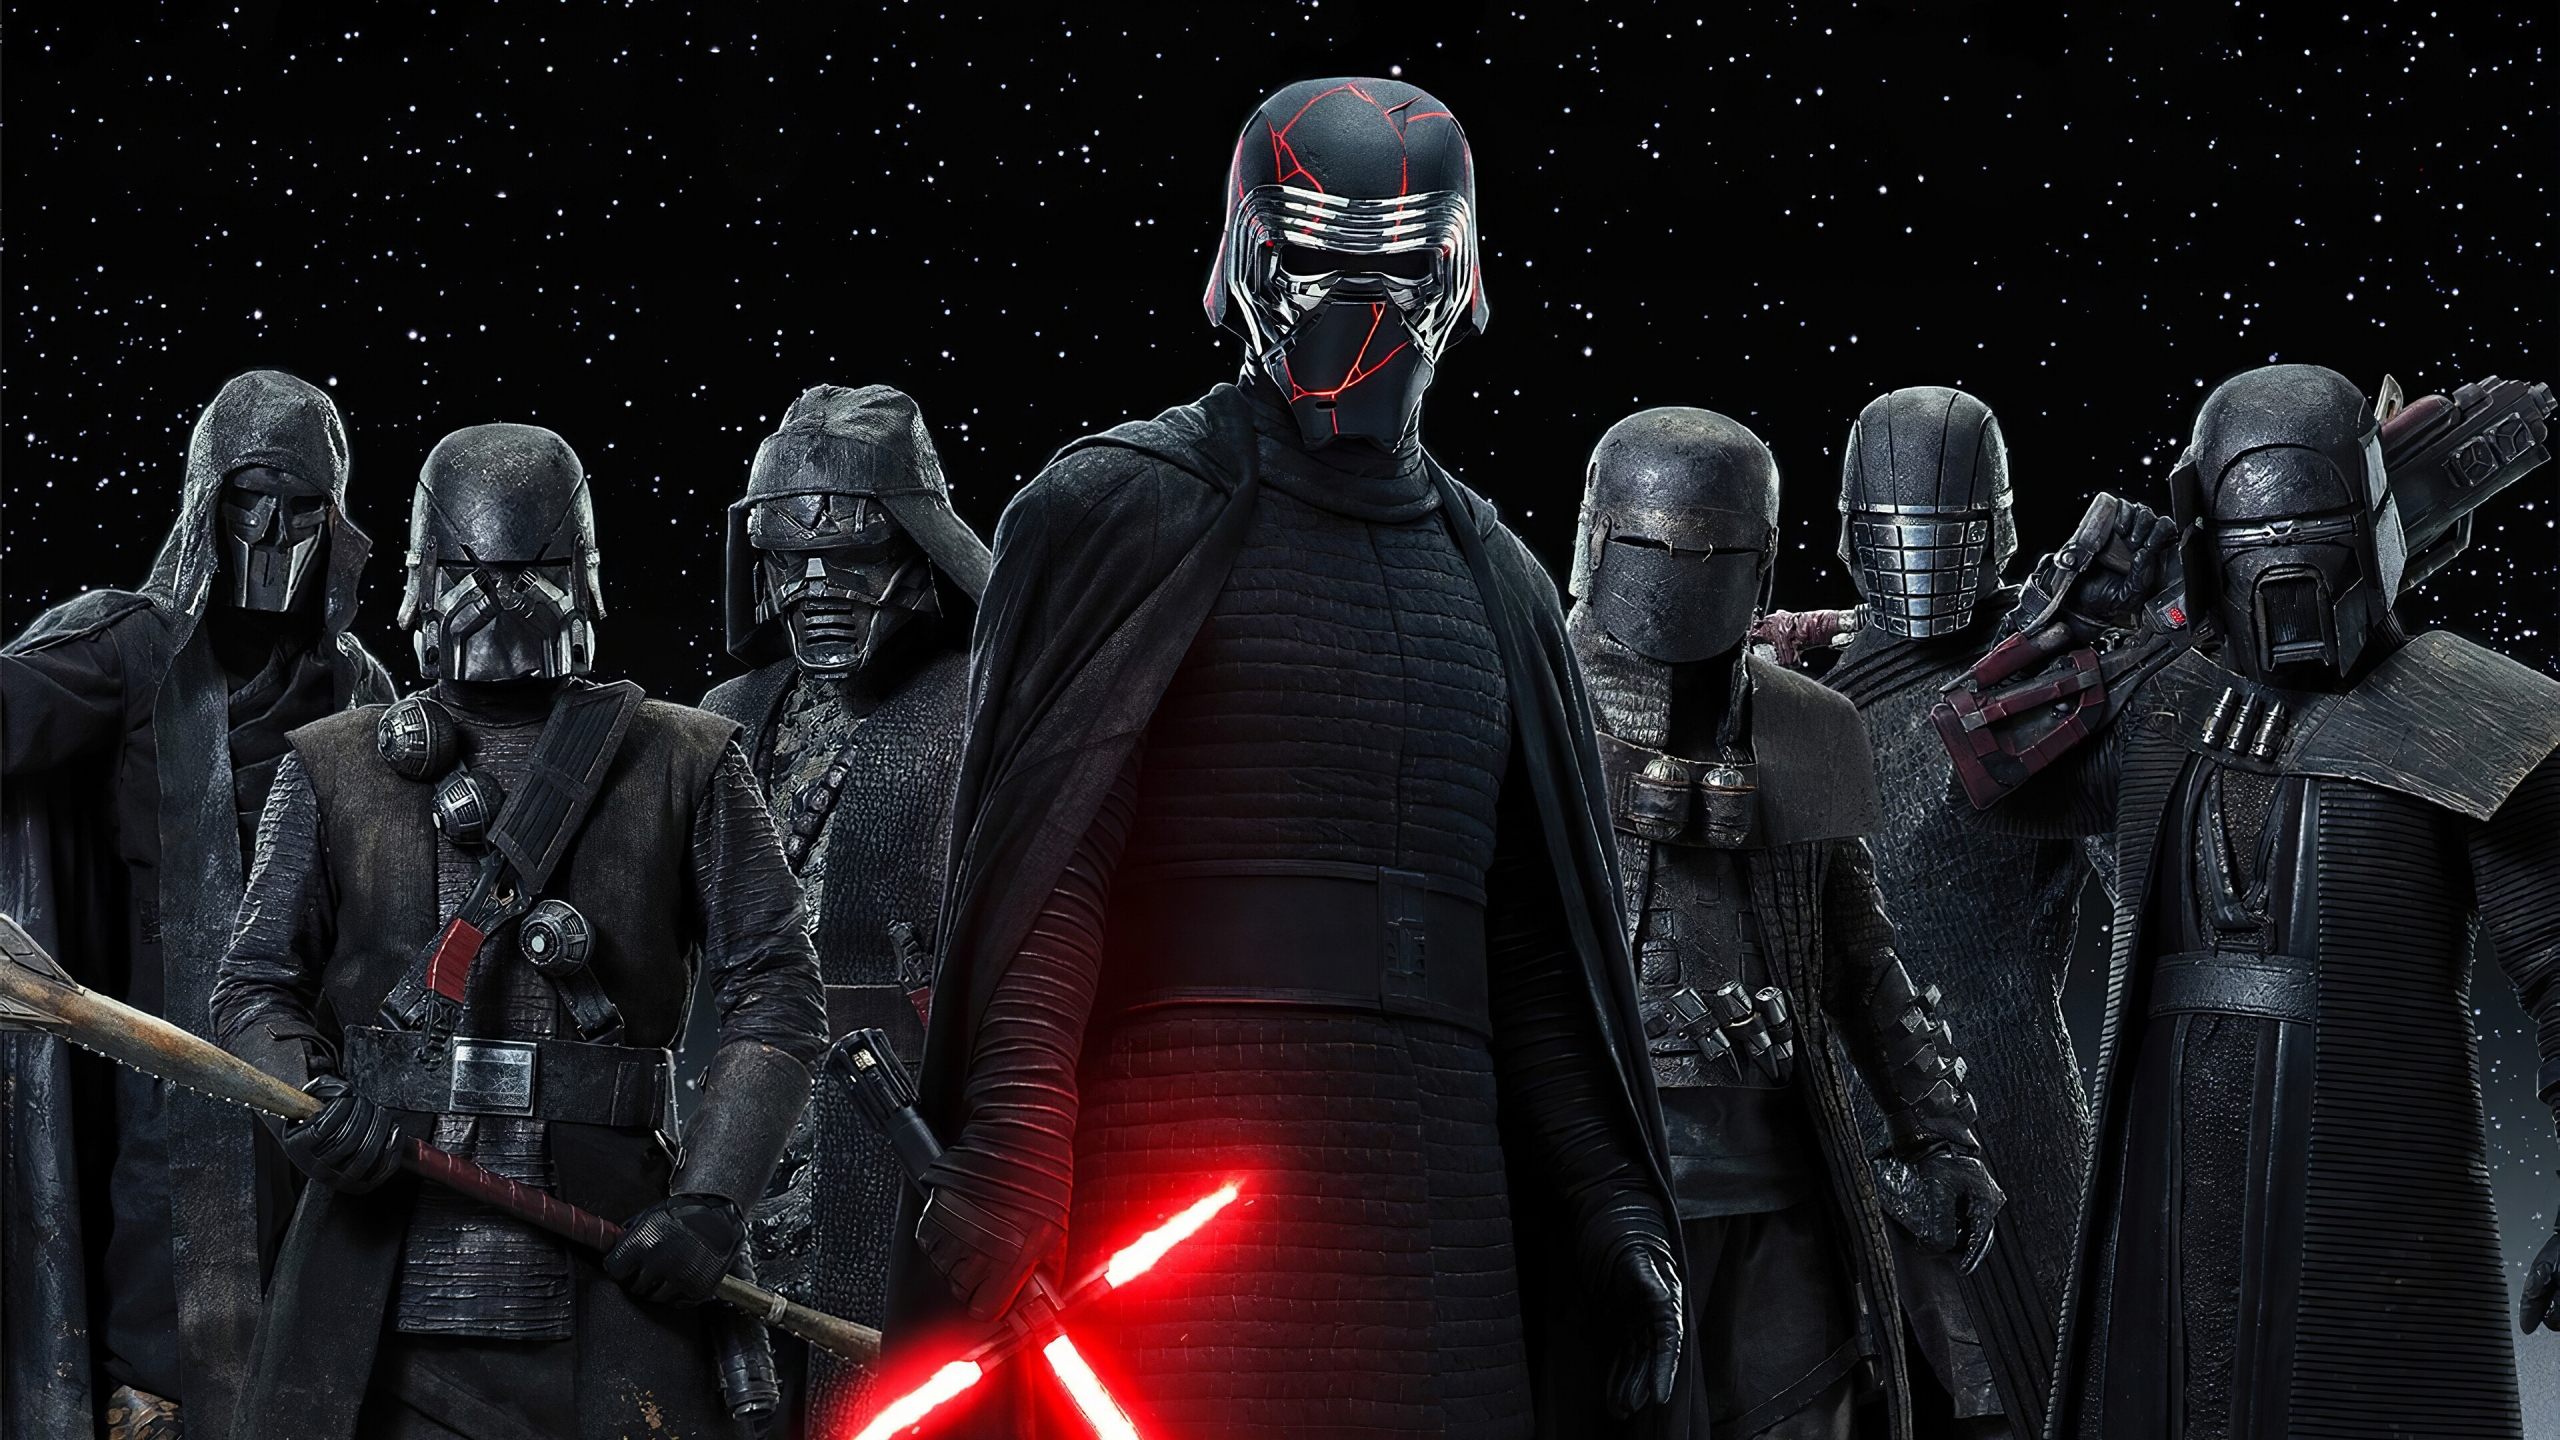 Knights Of Ren From Star Wars The Rise Of The Skywalker Wallpaper 4k Ultra Hd Id 4361